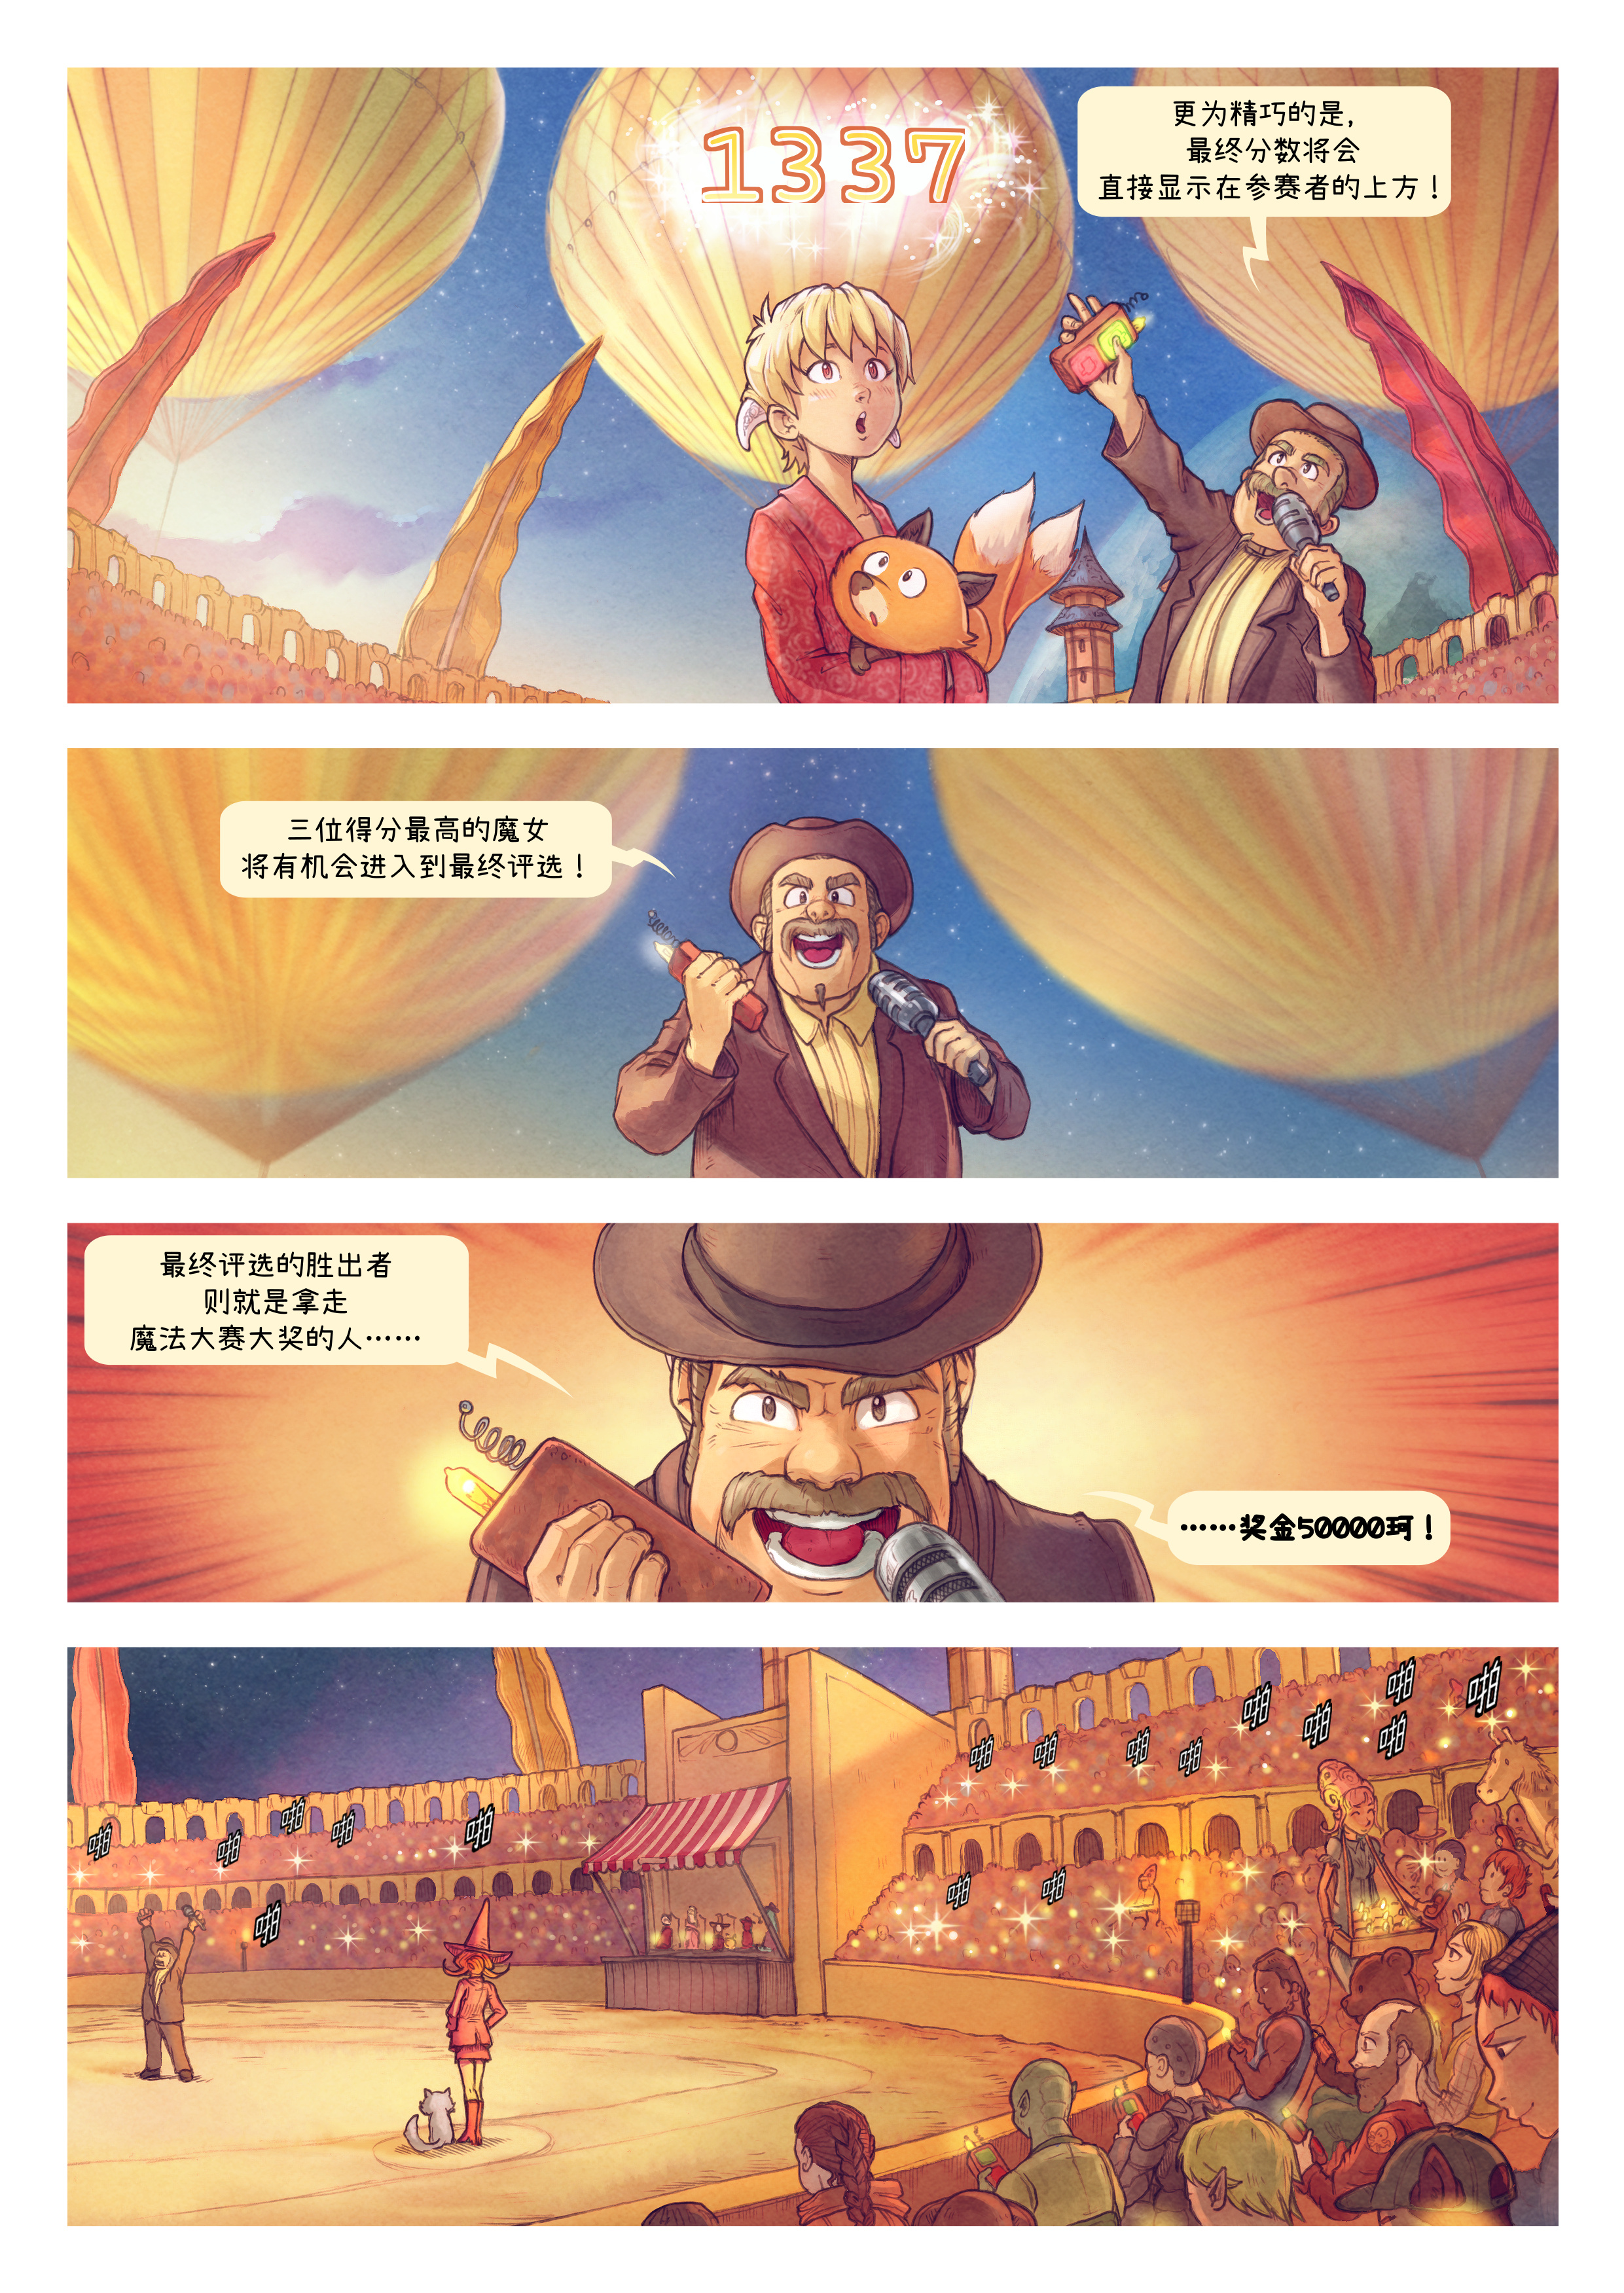 A webcomic page of Pepper&Carrot, 漫画全集 22 [cn], 页面 3